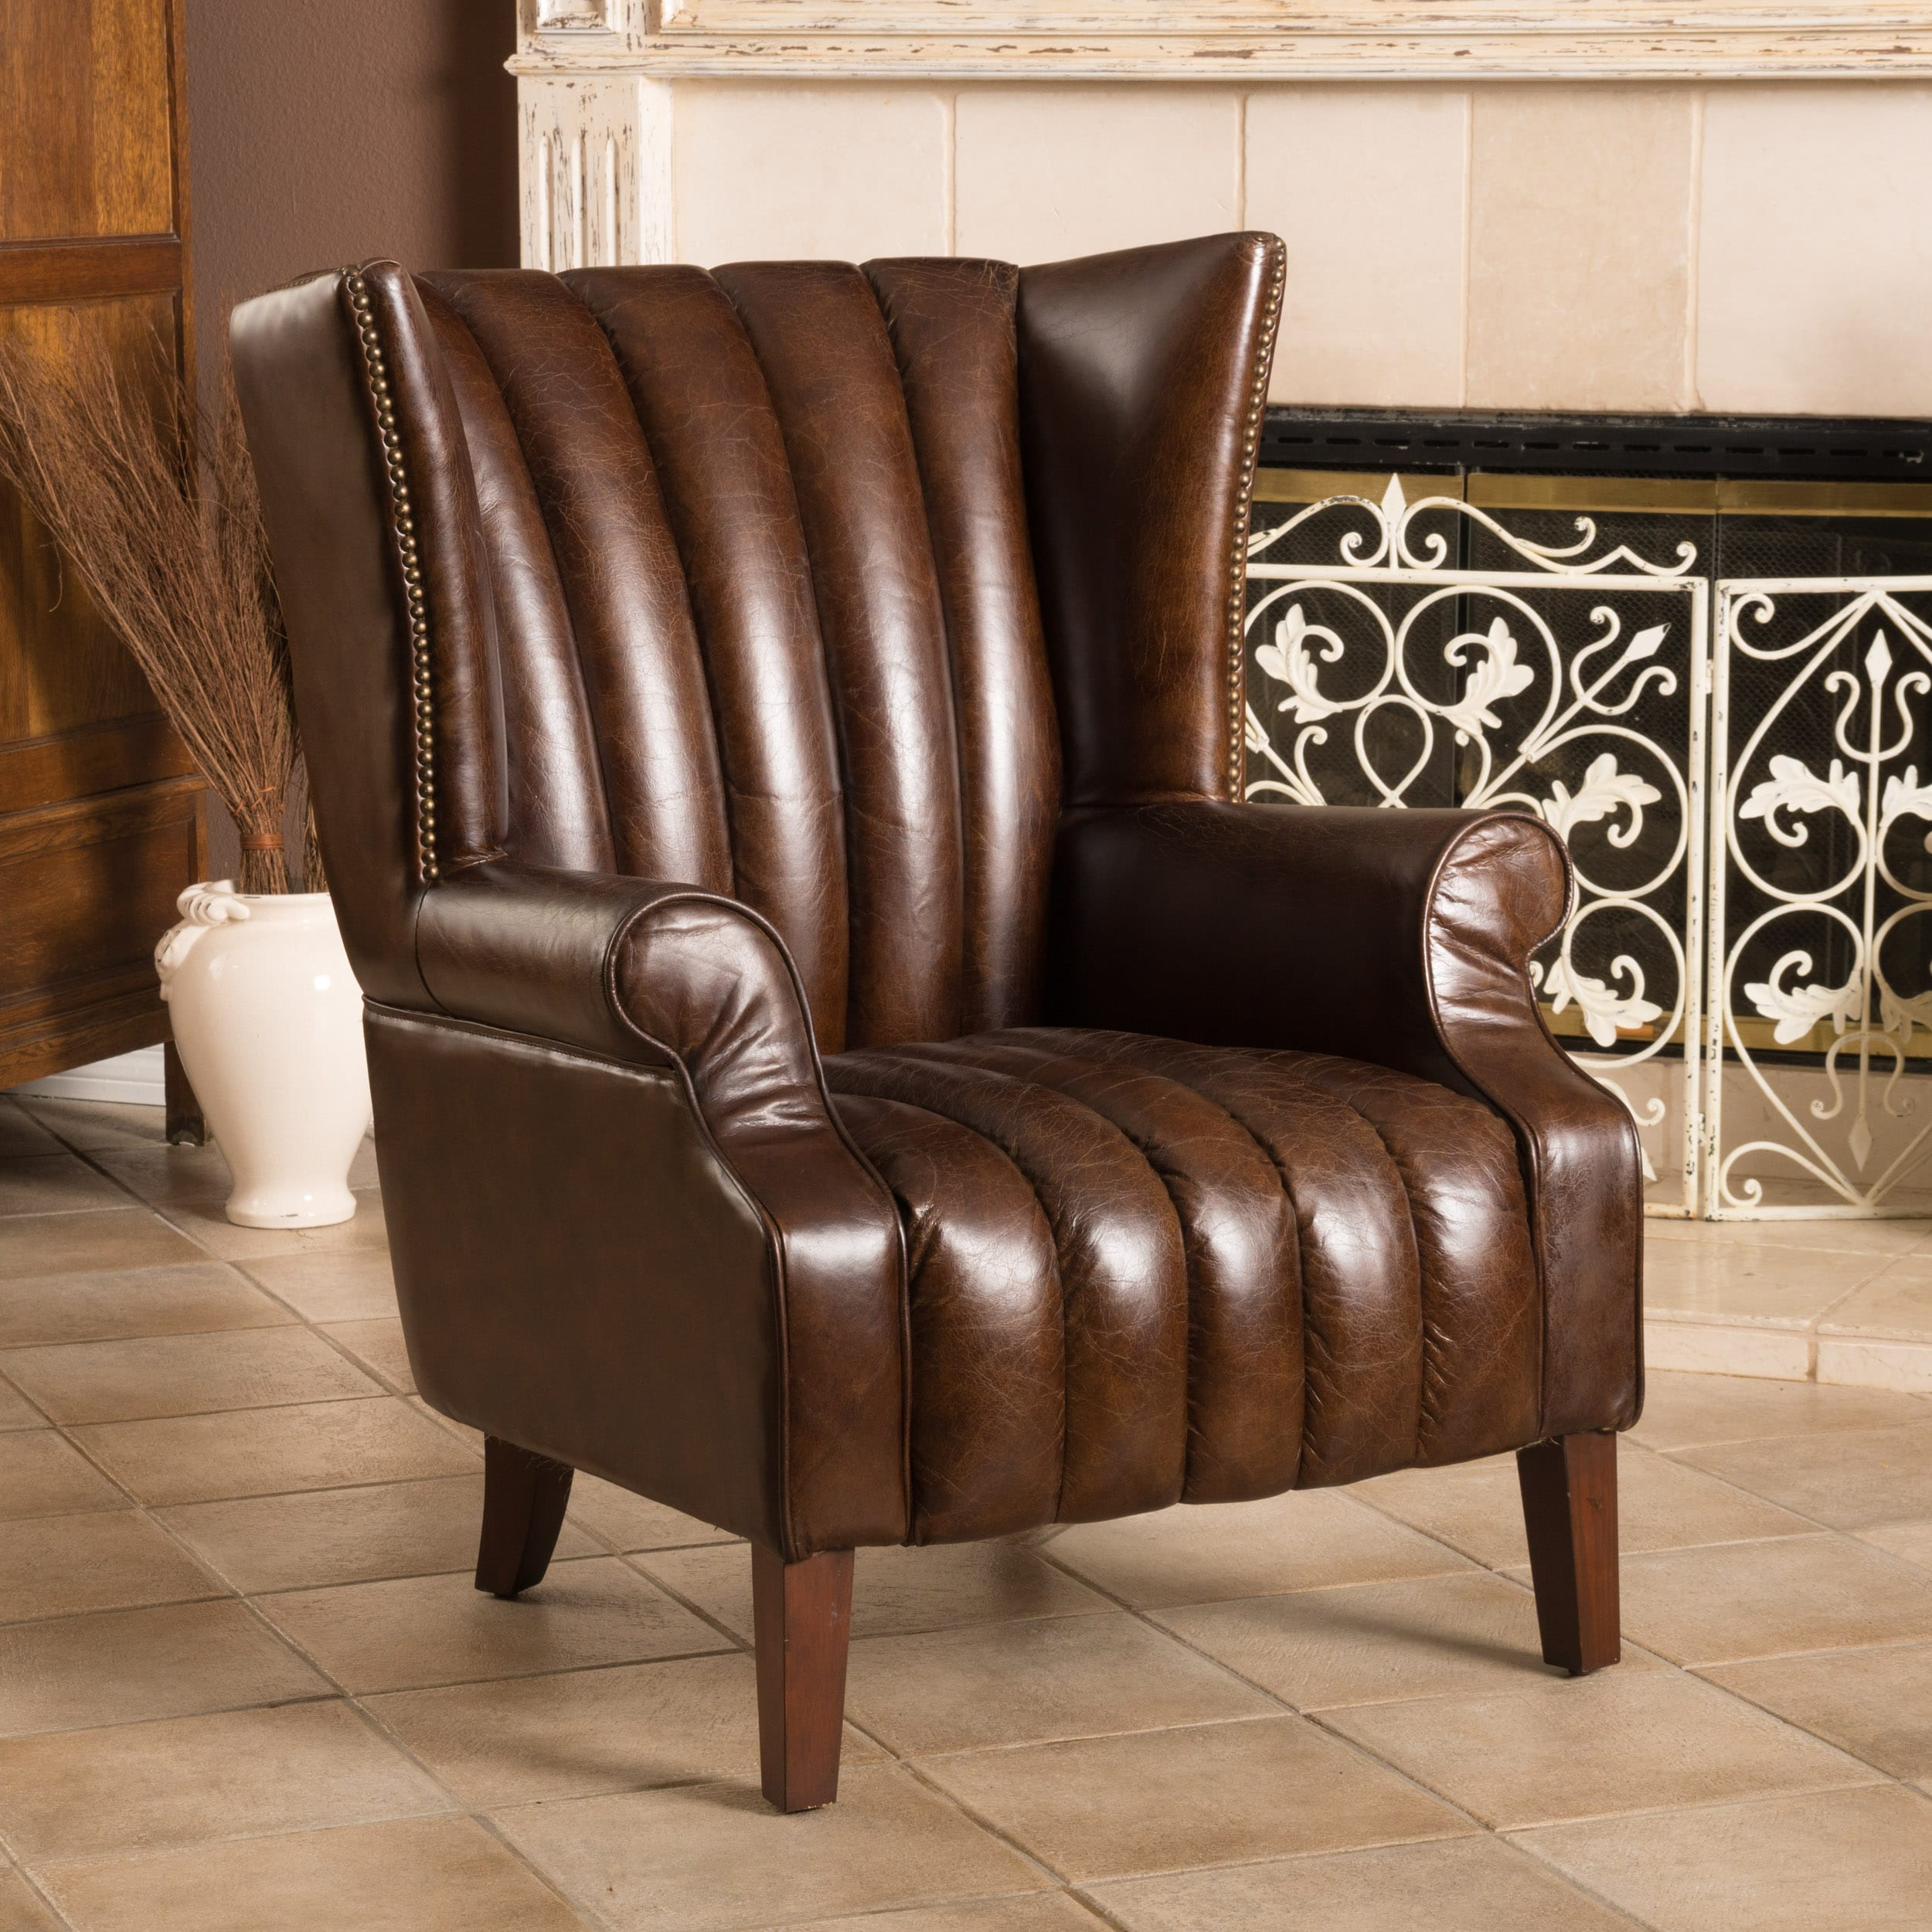 Christopher Knight Home Grisson Leather Chair